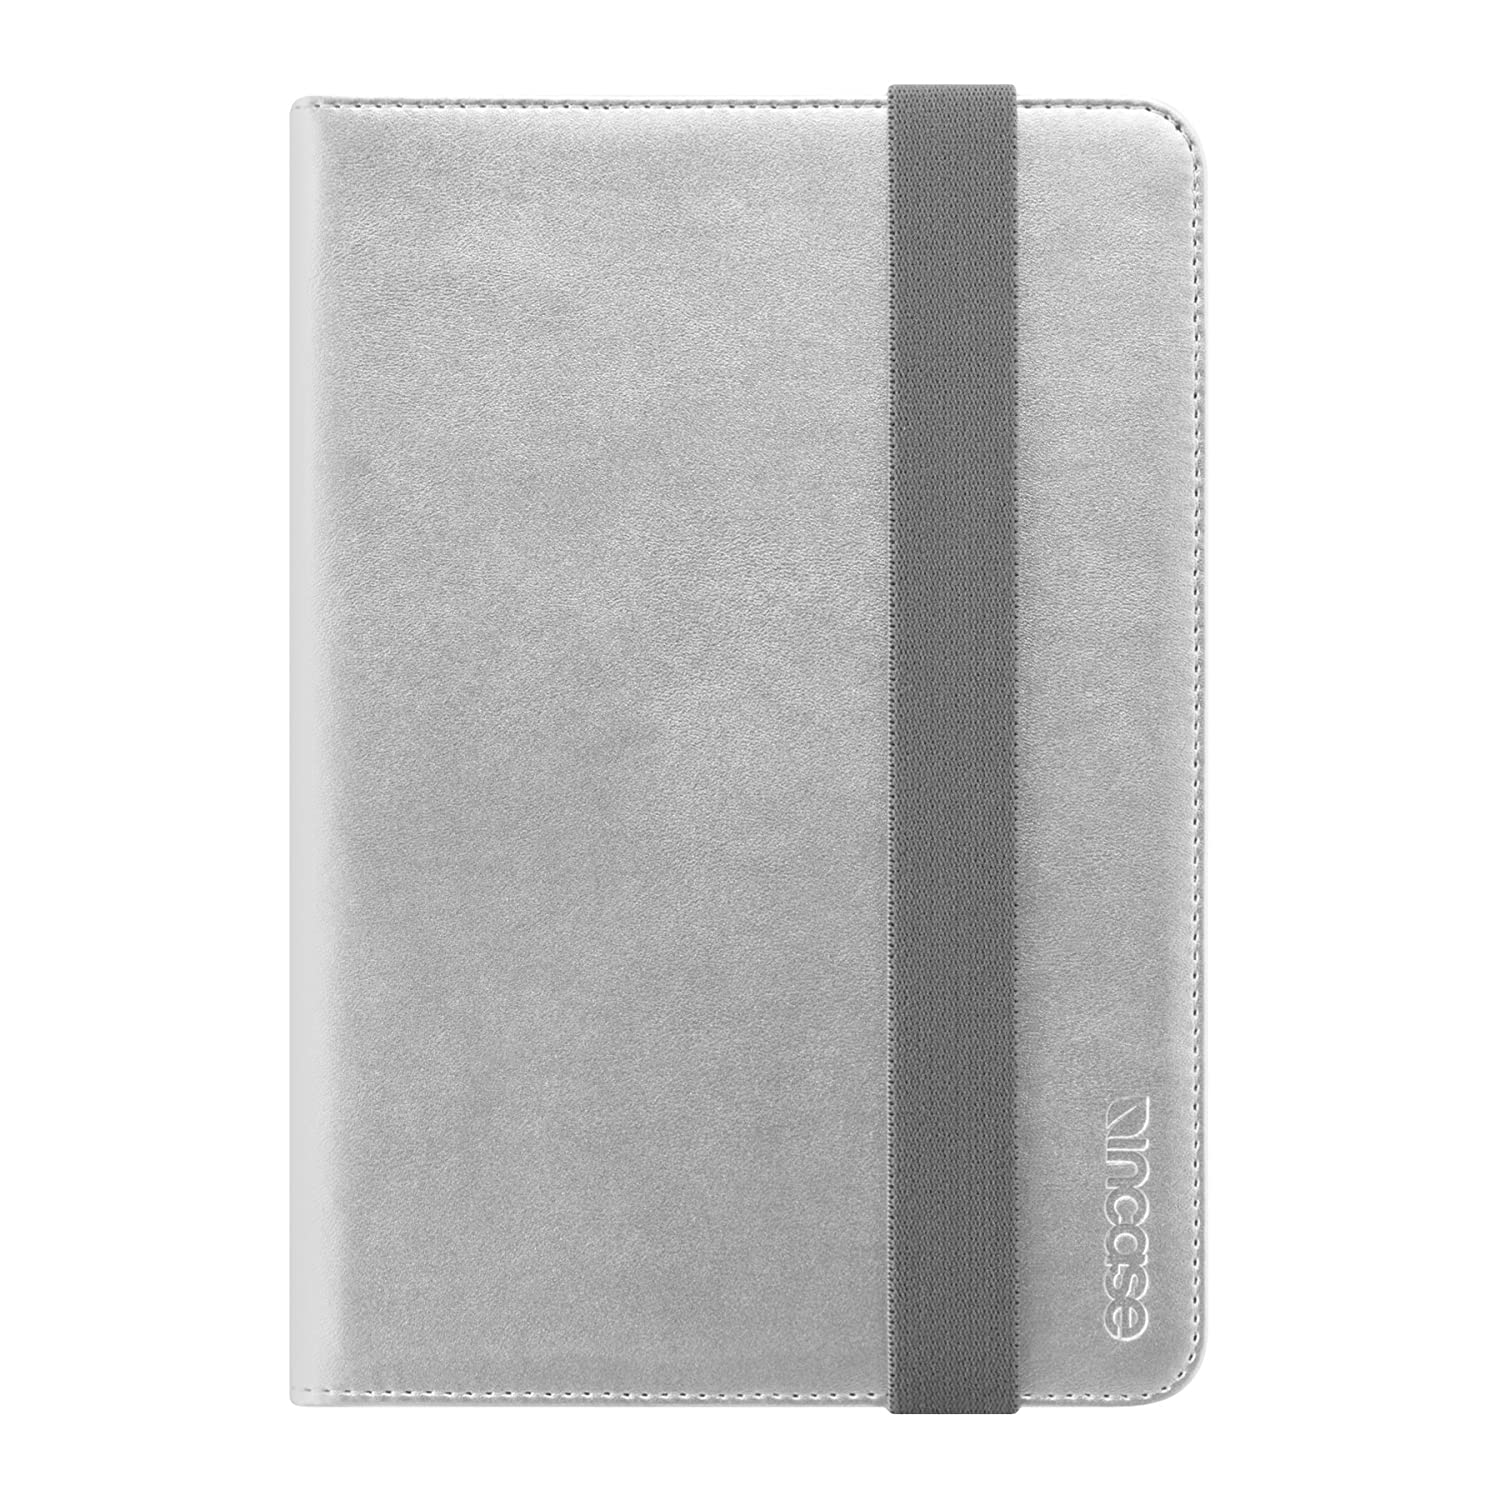 INCASE BOOK JACKET FOR APPLE IPAD MINI CL60299